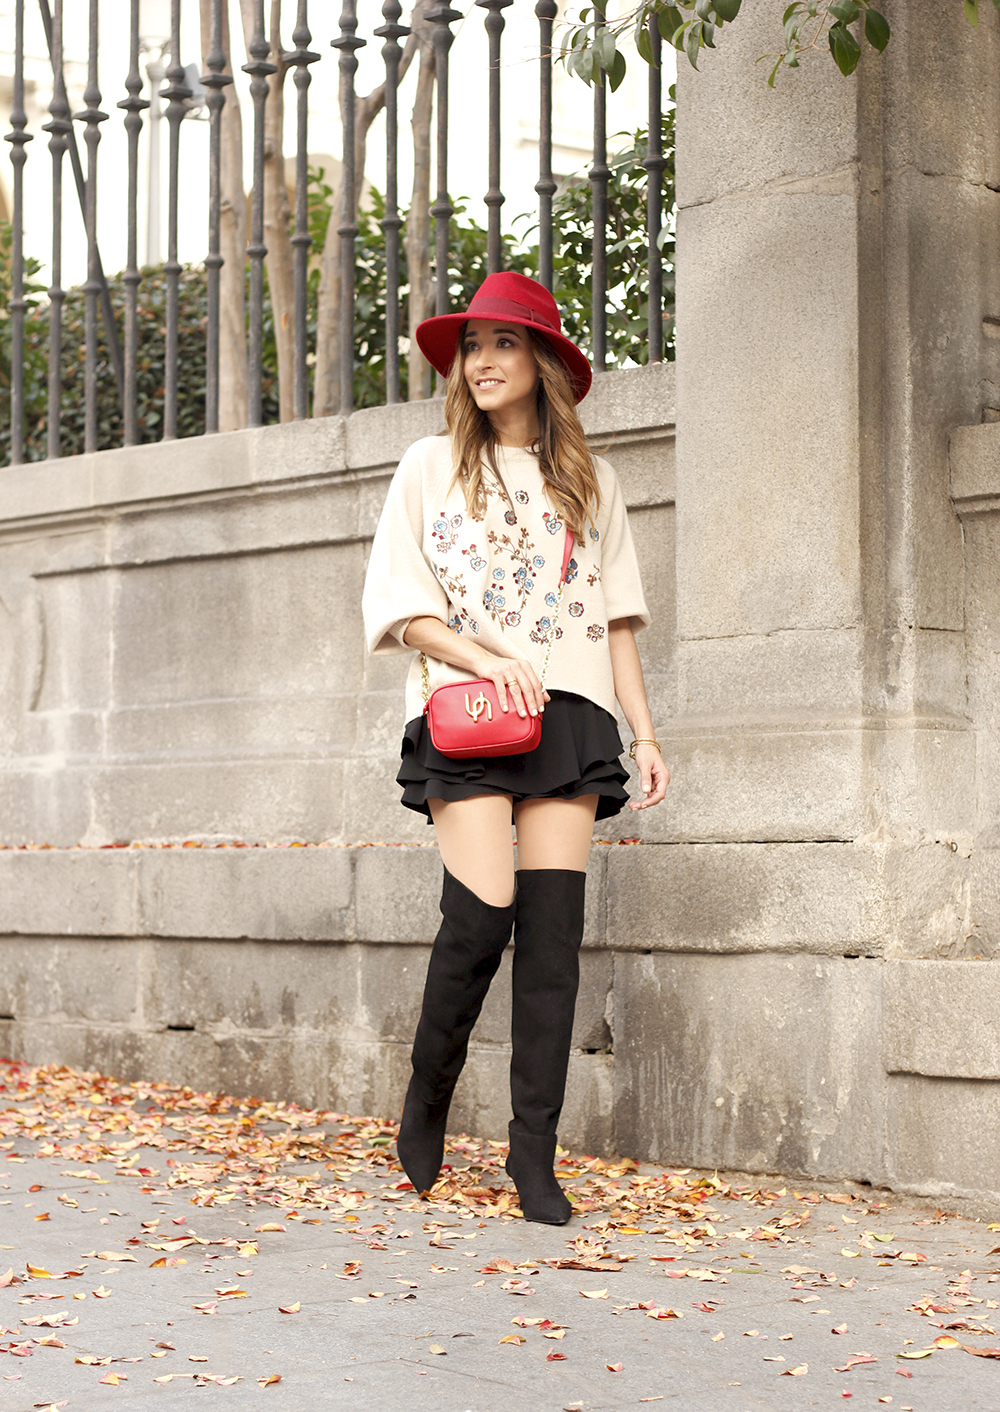 beige jersey with embroidered flowers over the knee black boots red hat street style fashion inspiration outfit06